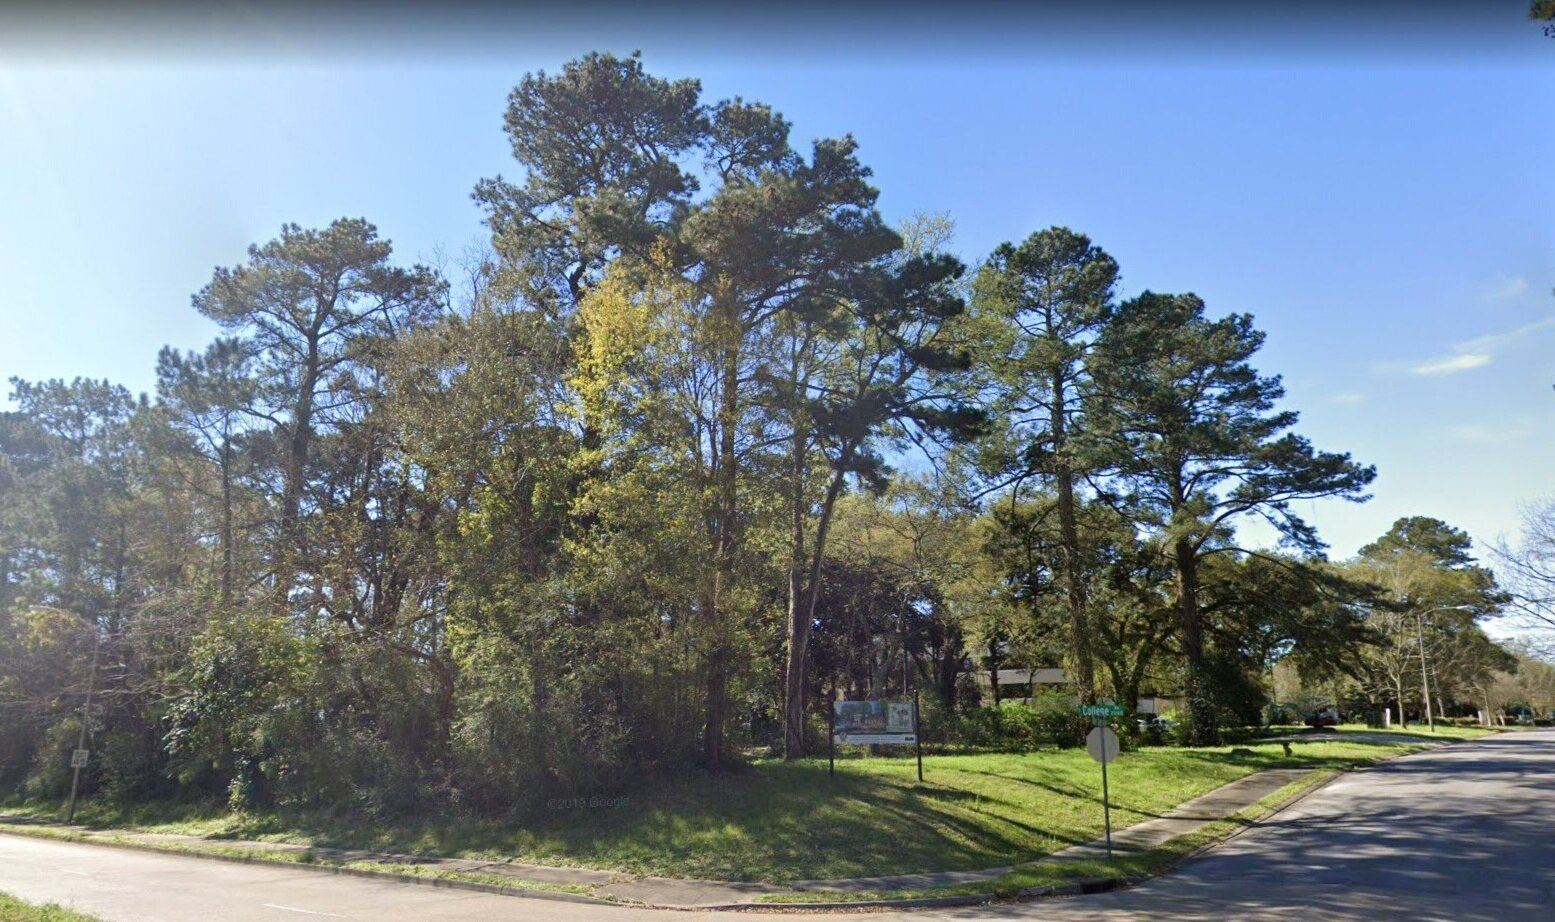 A view of the Iberville Grove project site before work began. Here you see the dense tree coverage and the topographic relief of the site.